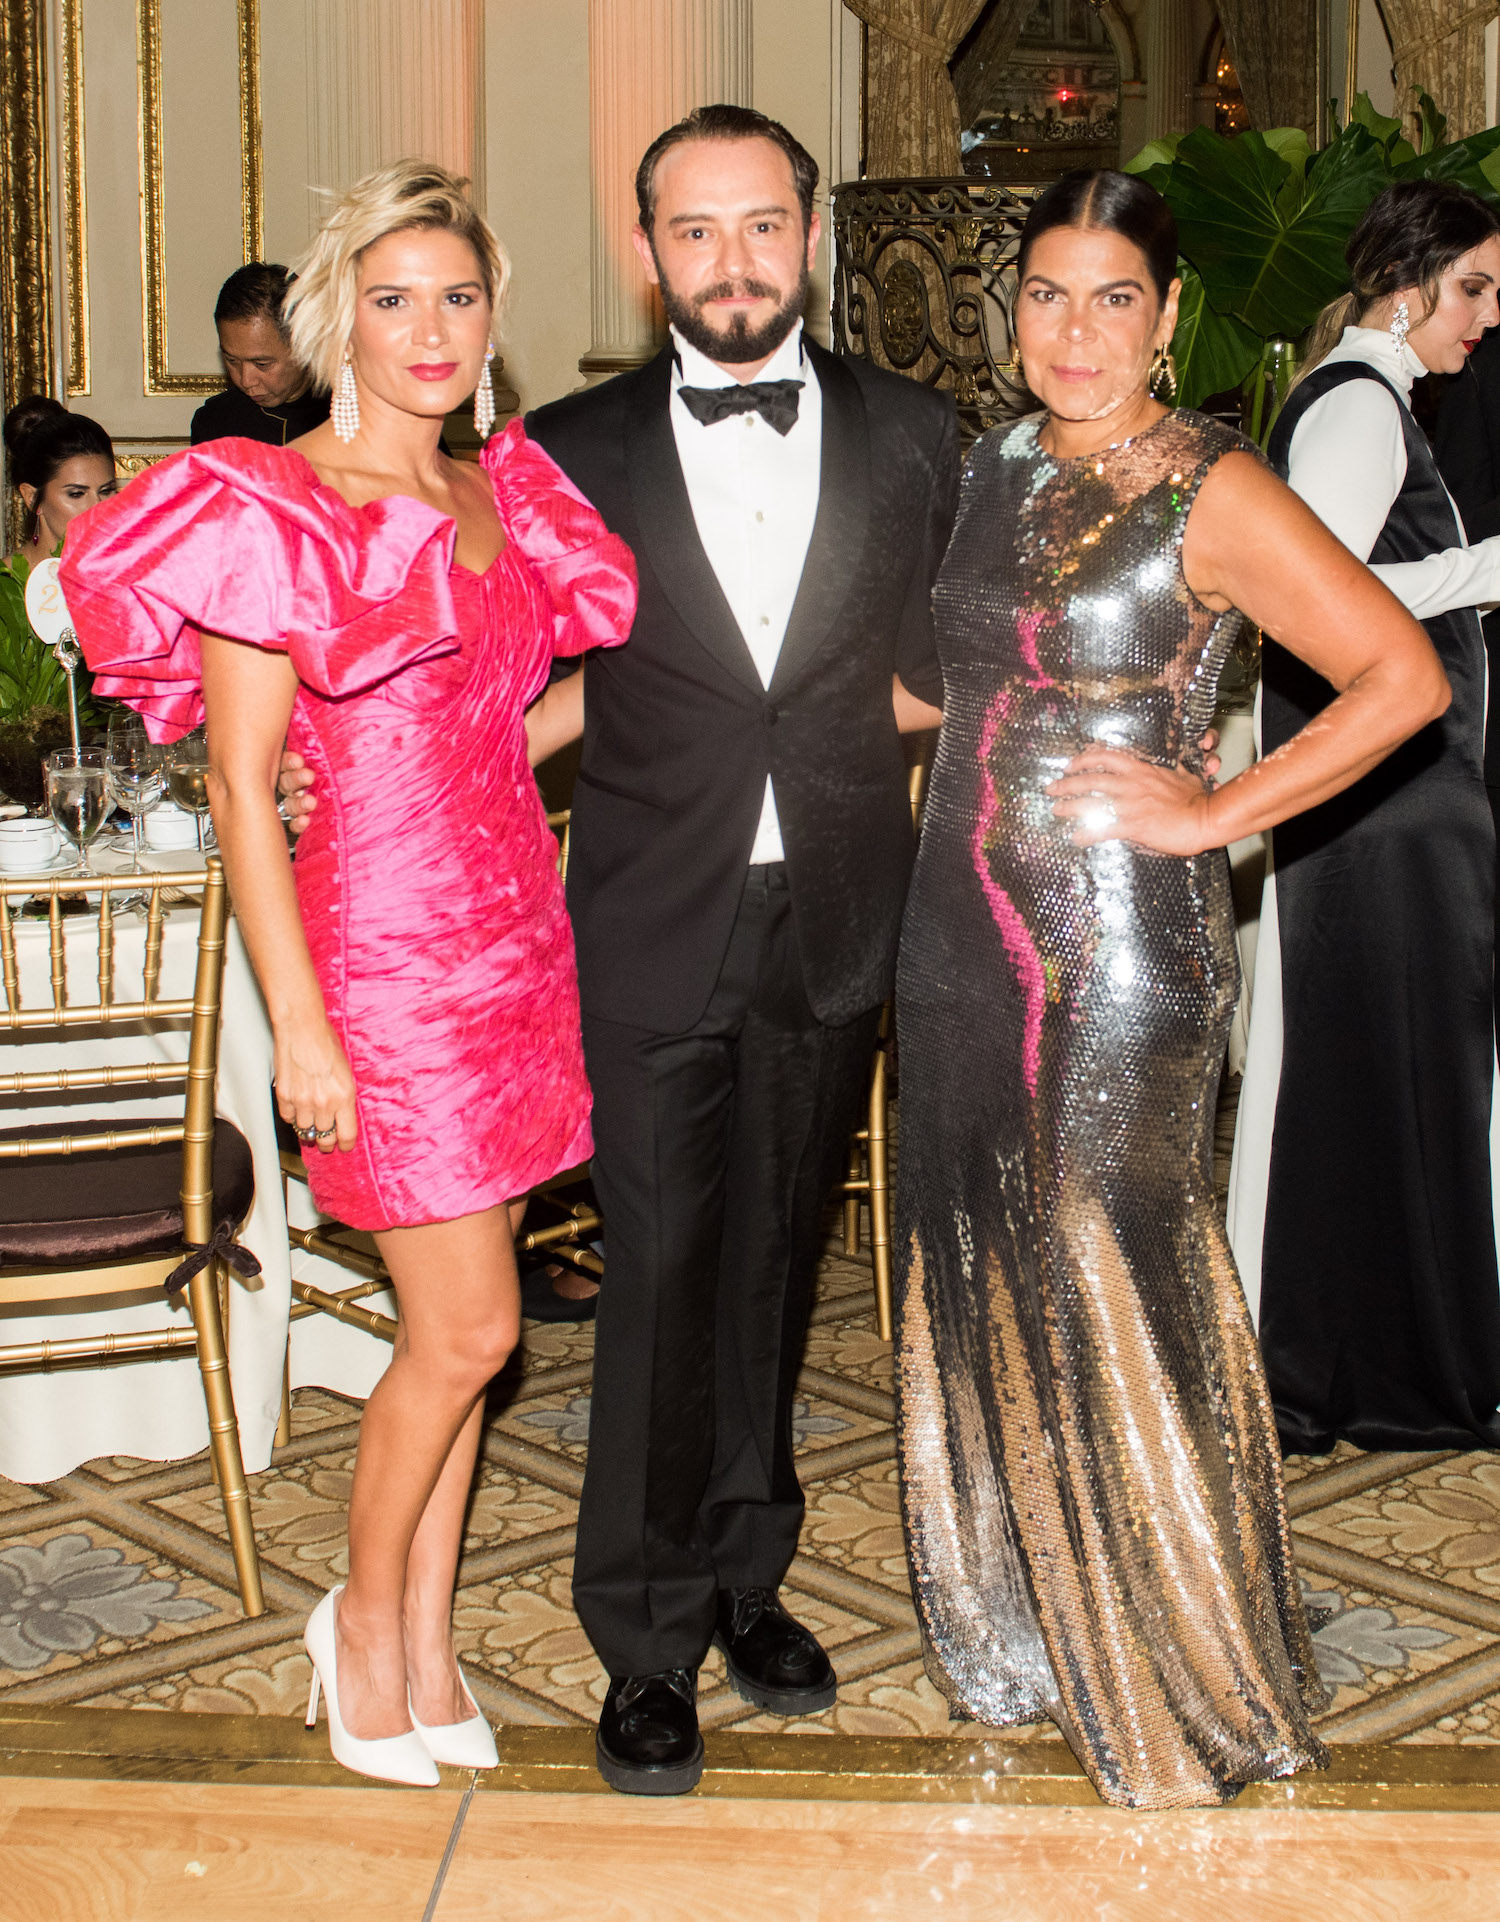 Jeff Ares, Daniela Falcao BrazilFoundation XVI Gala New York Celebrating the Amazon Plaza